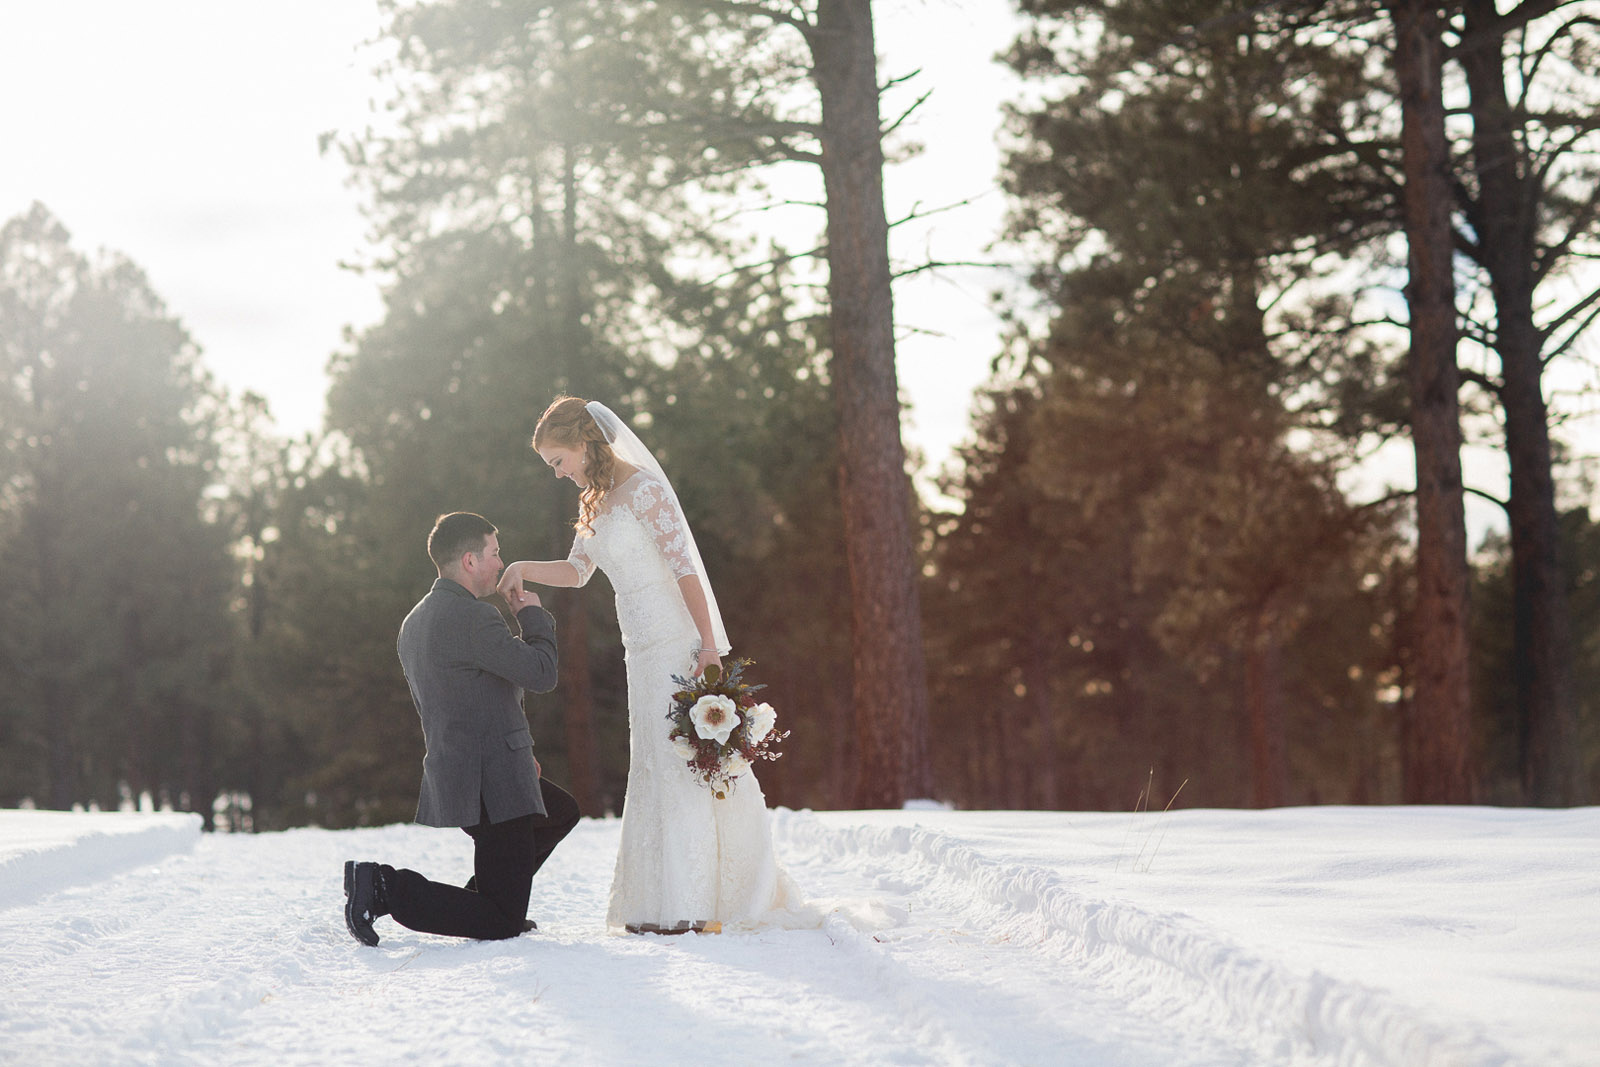 147-wedding-photographer-captures-newlyweds-in-snow-during-a-winter-snow-wedding-in-the-mountains-in-colorado